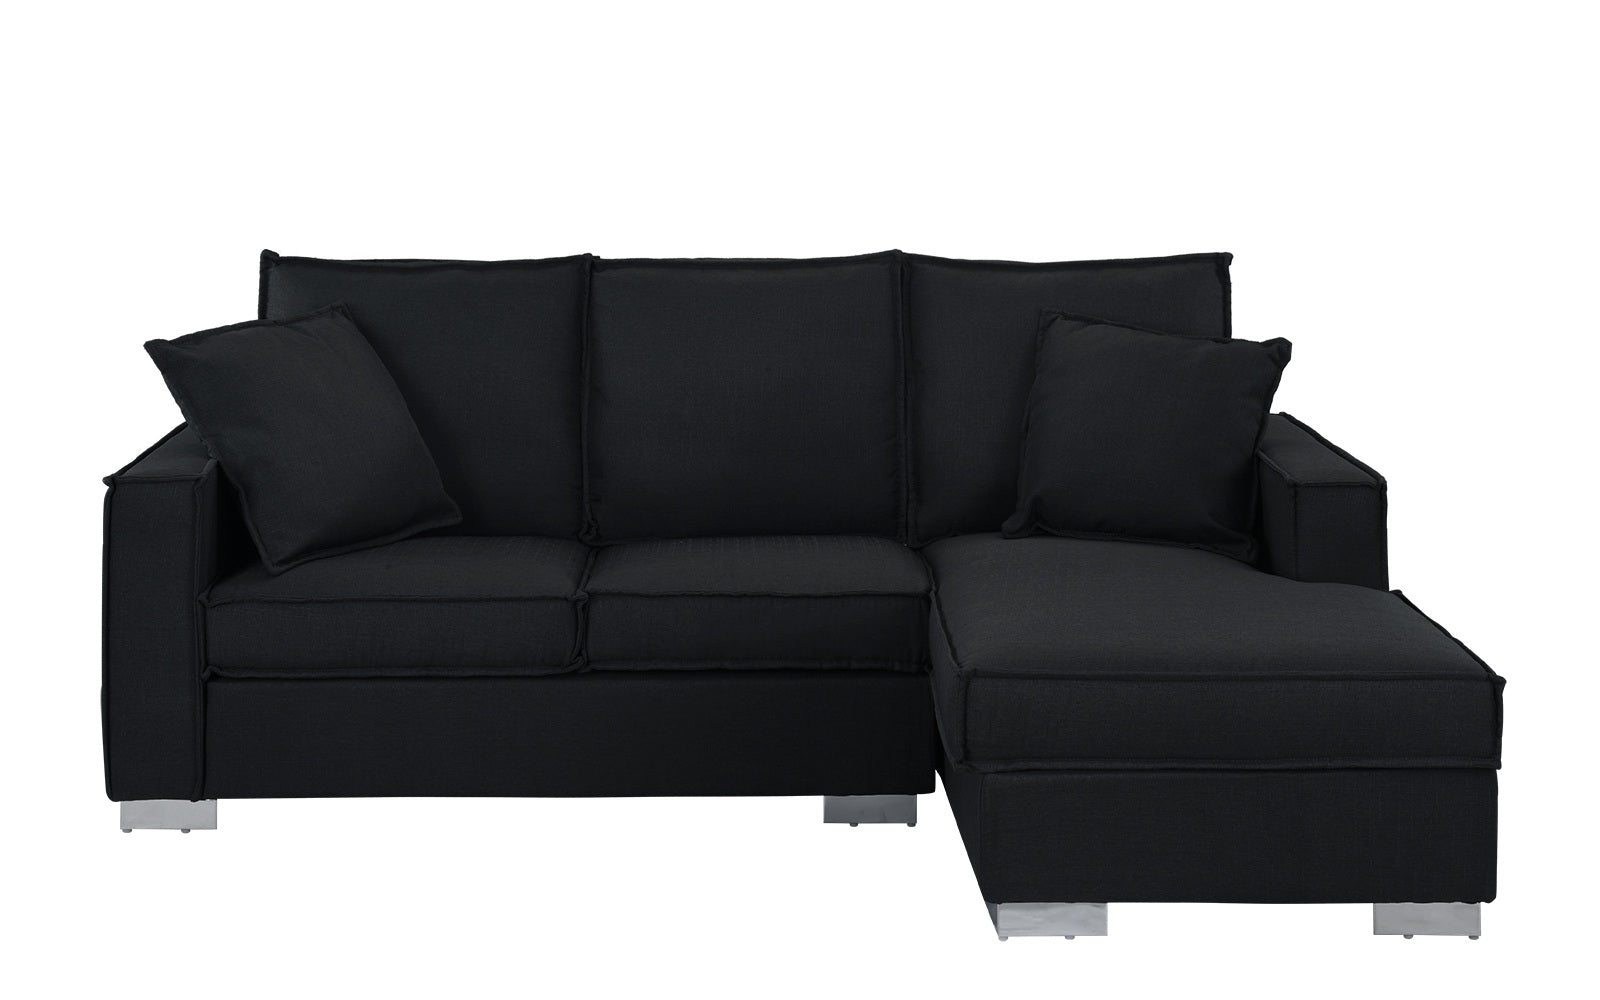 Quinto Contemporary Small Space-Saving Sectional Sofa